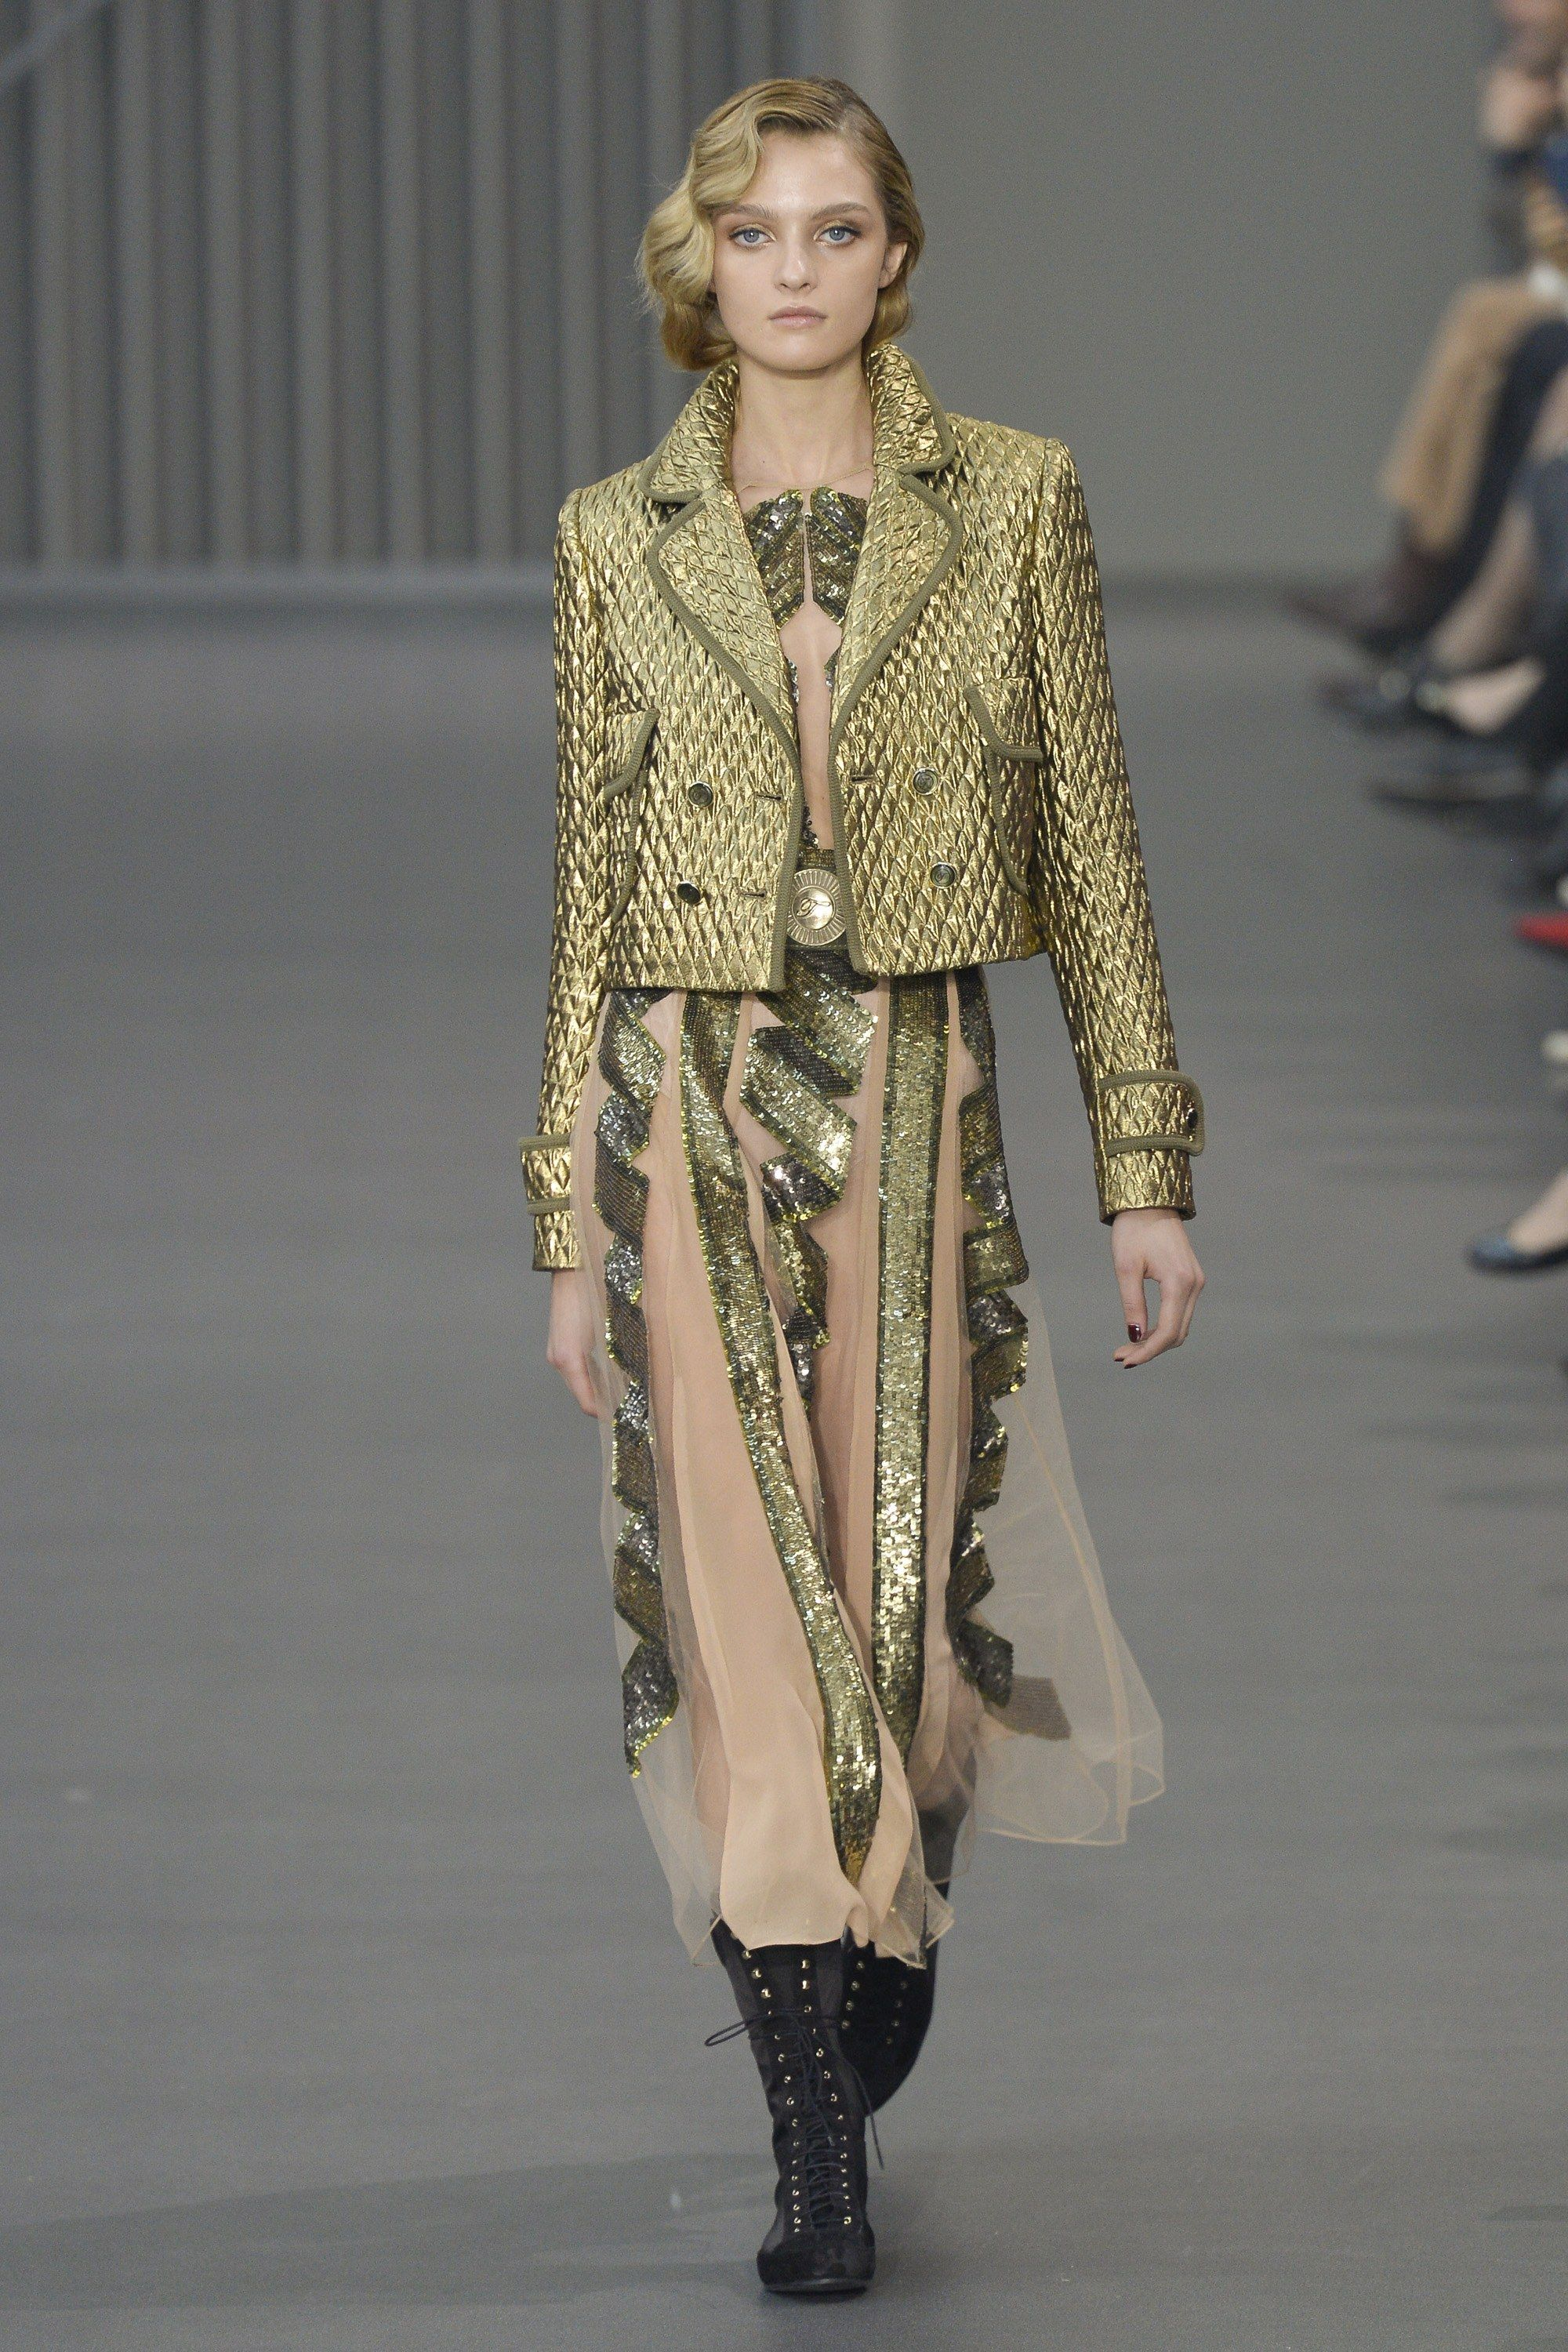 https://www.vogue.com/fashion-shows/fall-2018-ready-to-wear/temperley-london/slideshow/collection#5